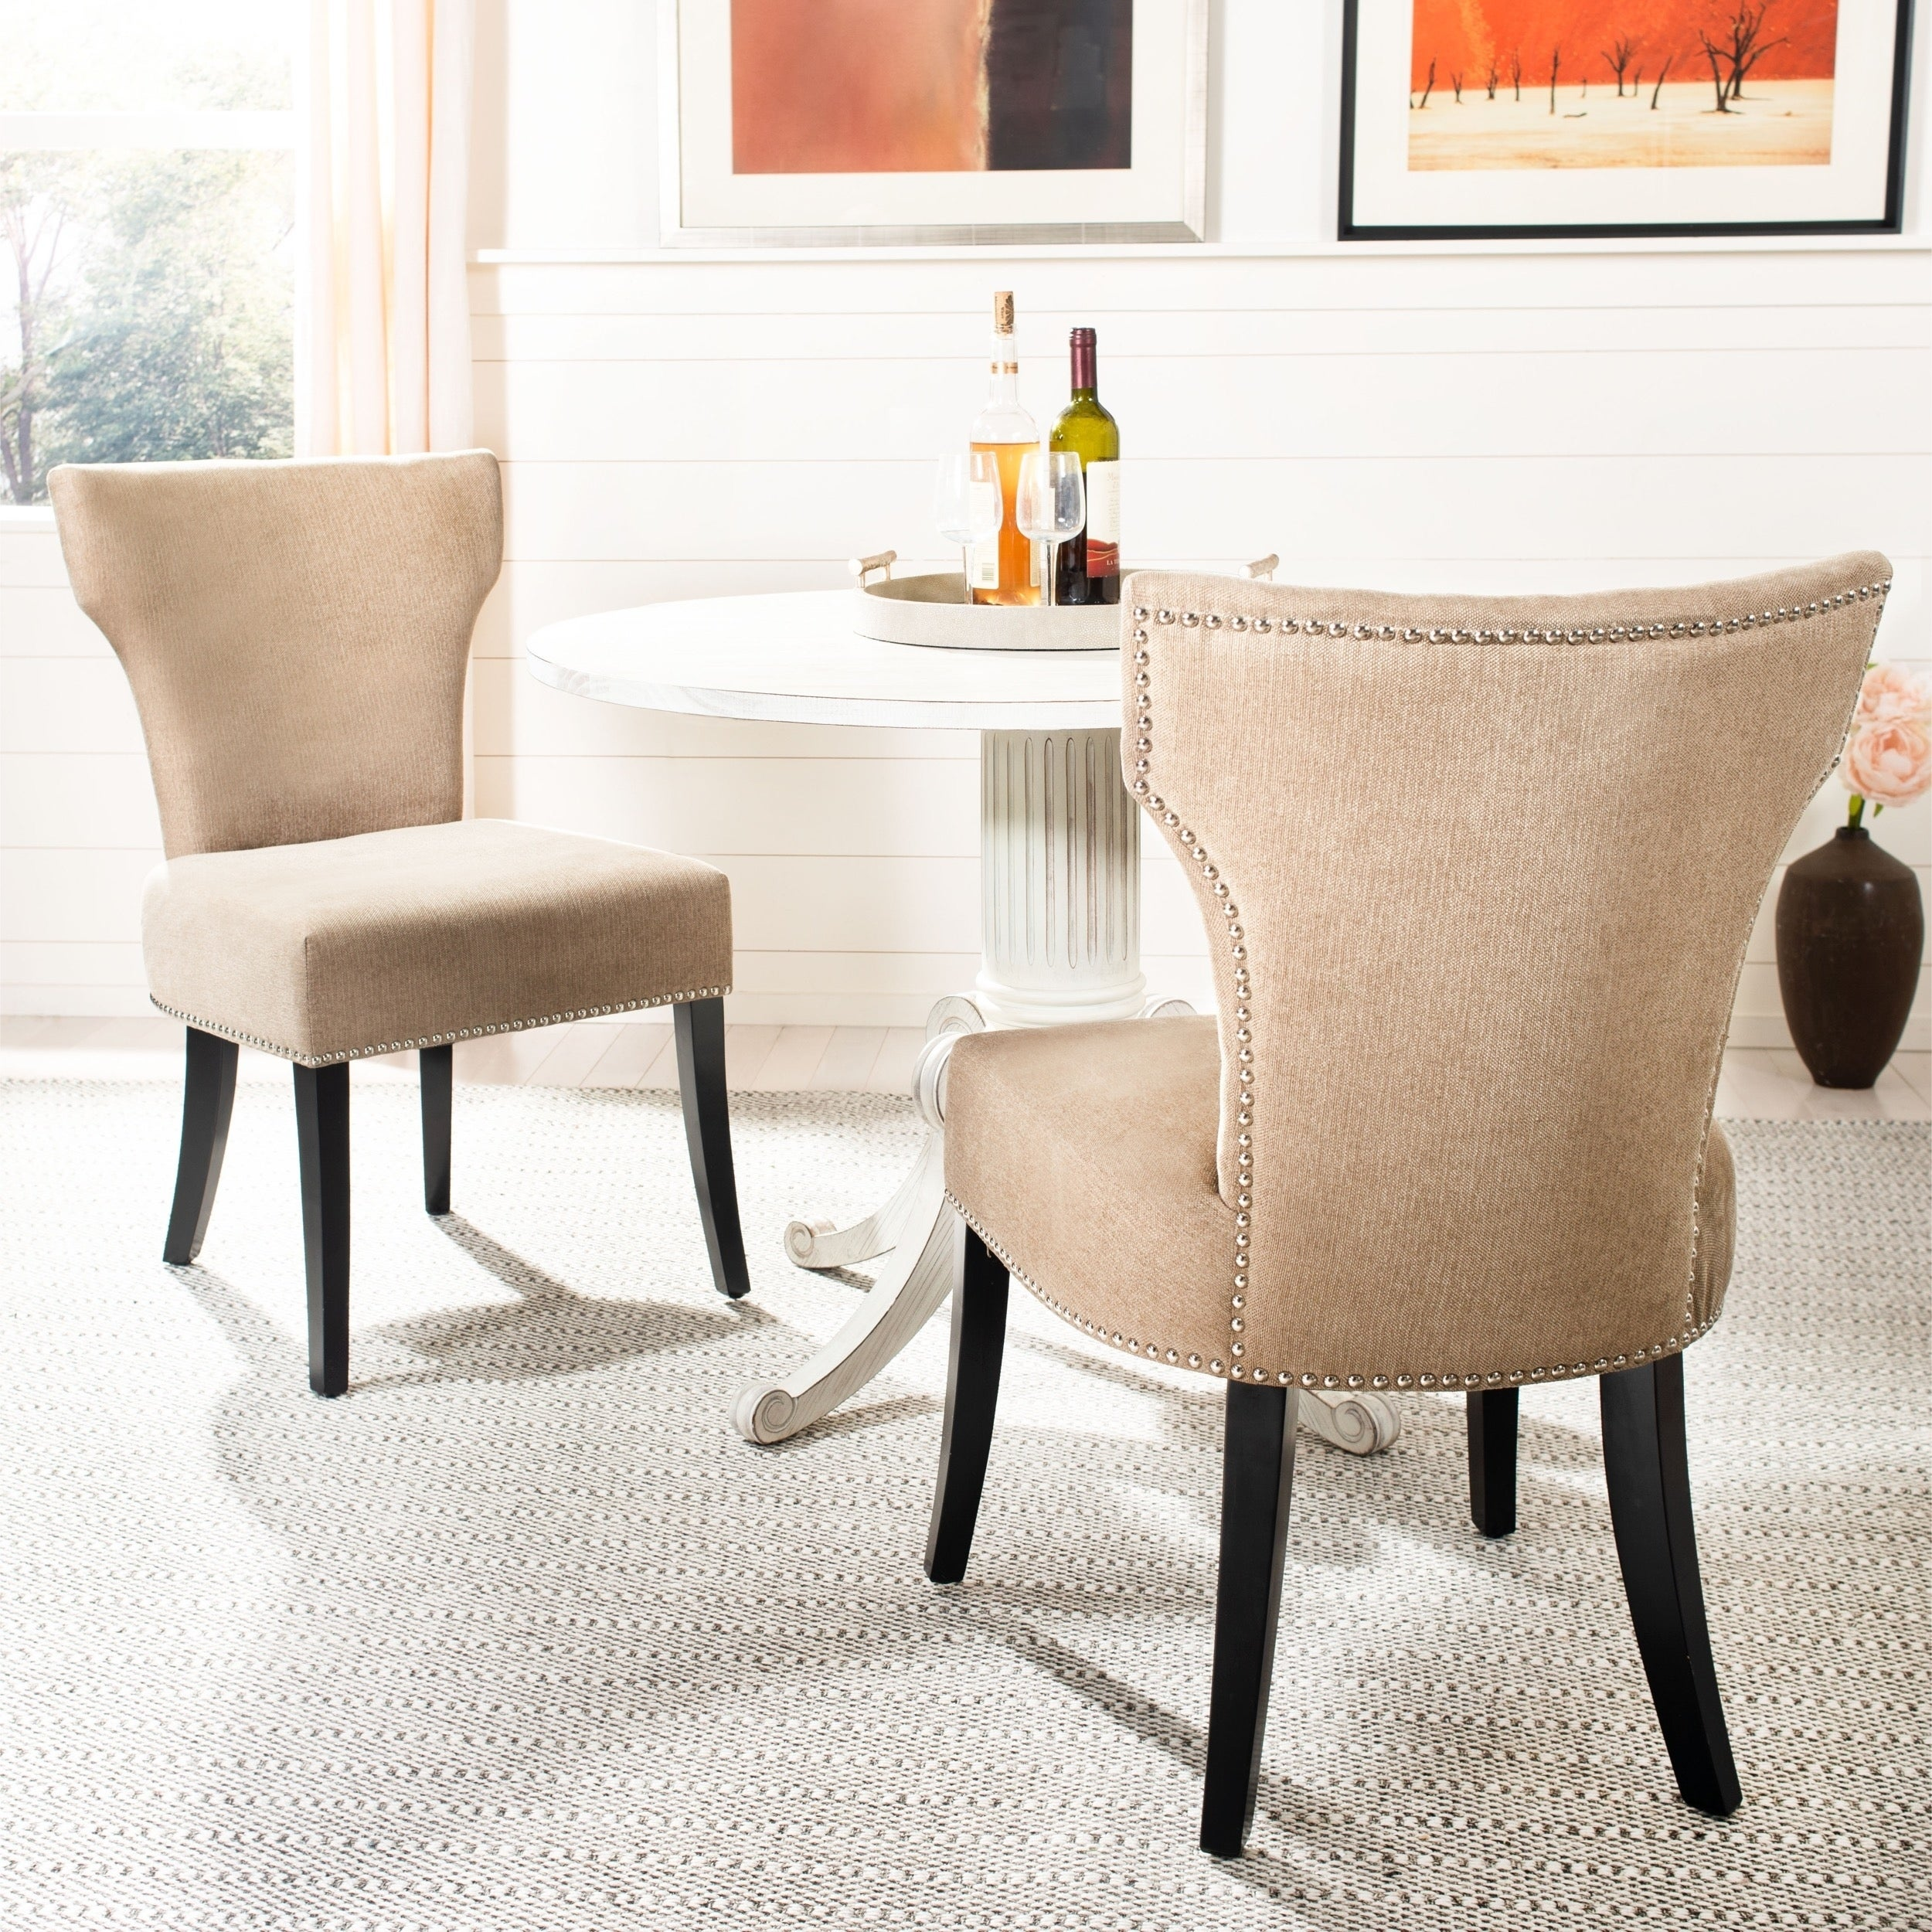 Cool Safavieh Dining Matty Wheat Polyester Nailhead Dining Chairs Set Of 2 Gmtry Best Dining Table And Chair Ideas Images Gmtryco